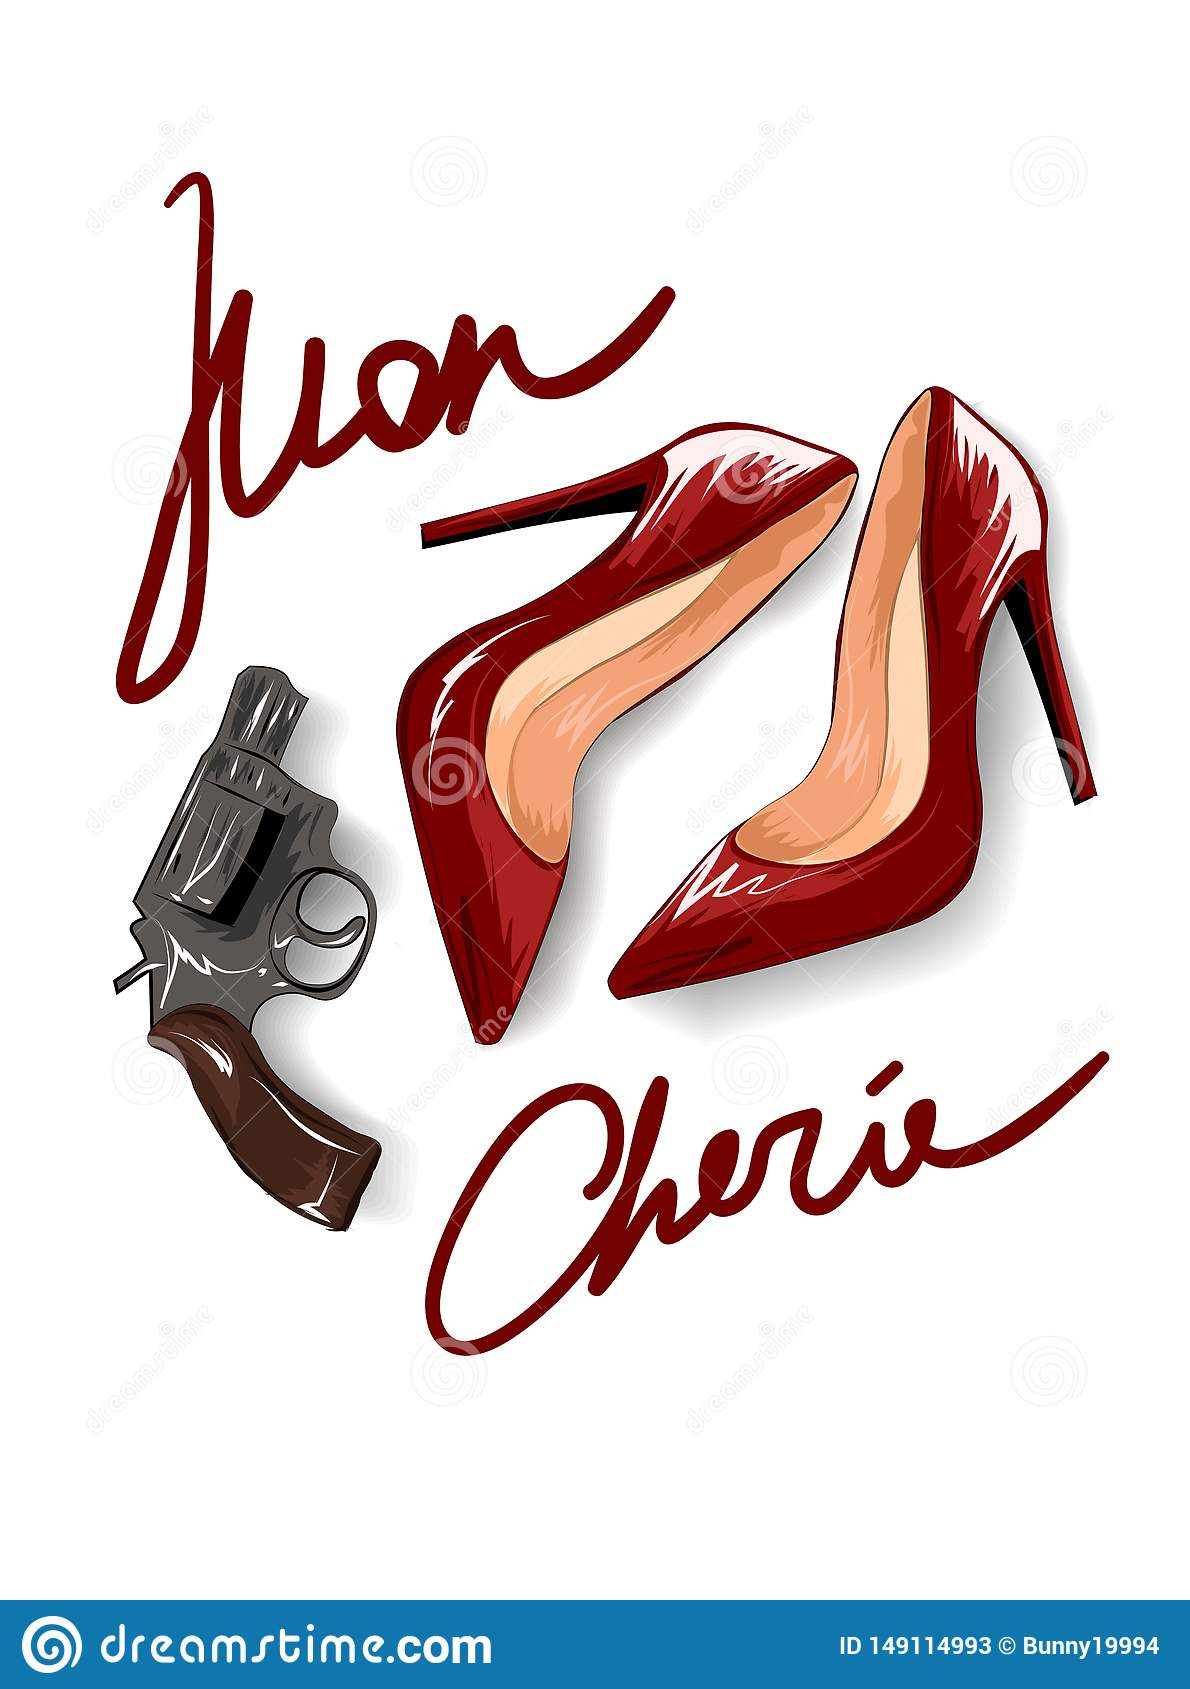 Mon cherie slogan with red heels and a pistol illustration.